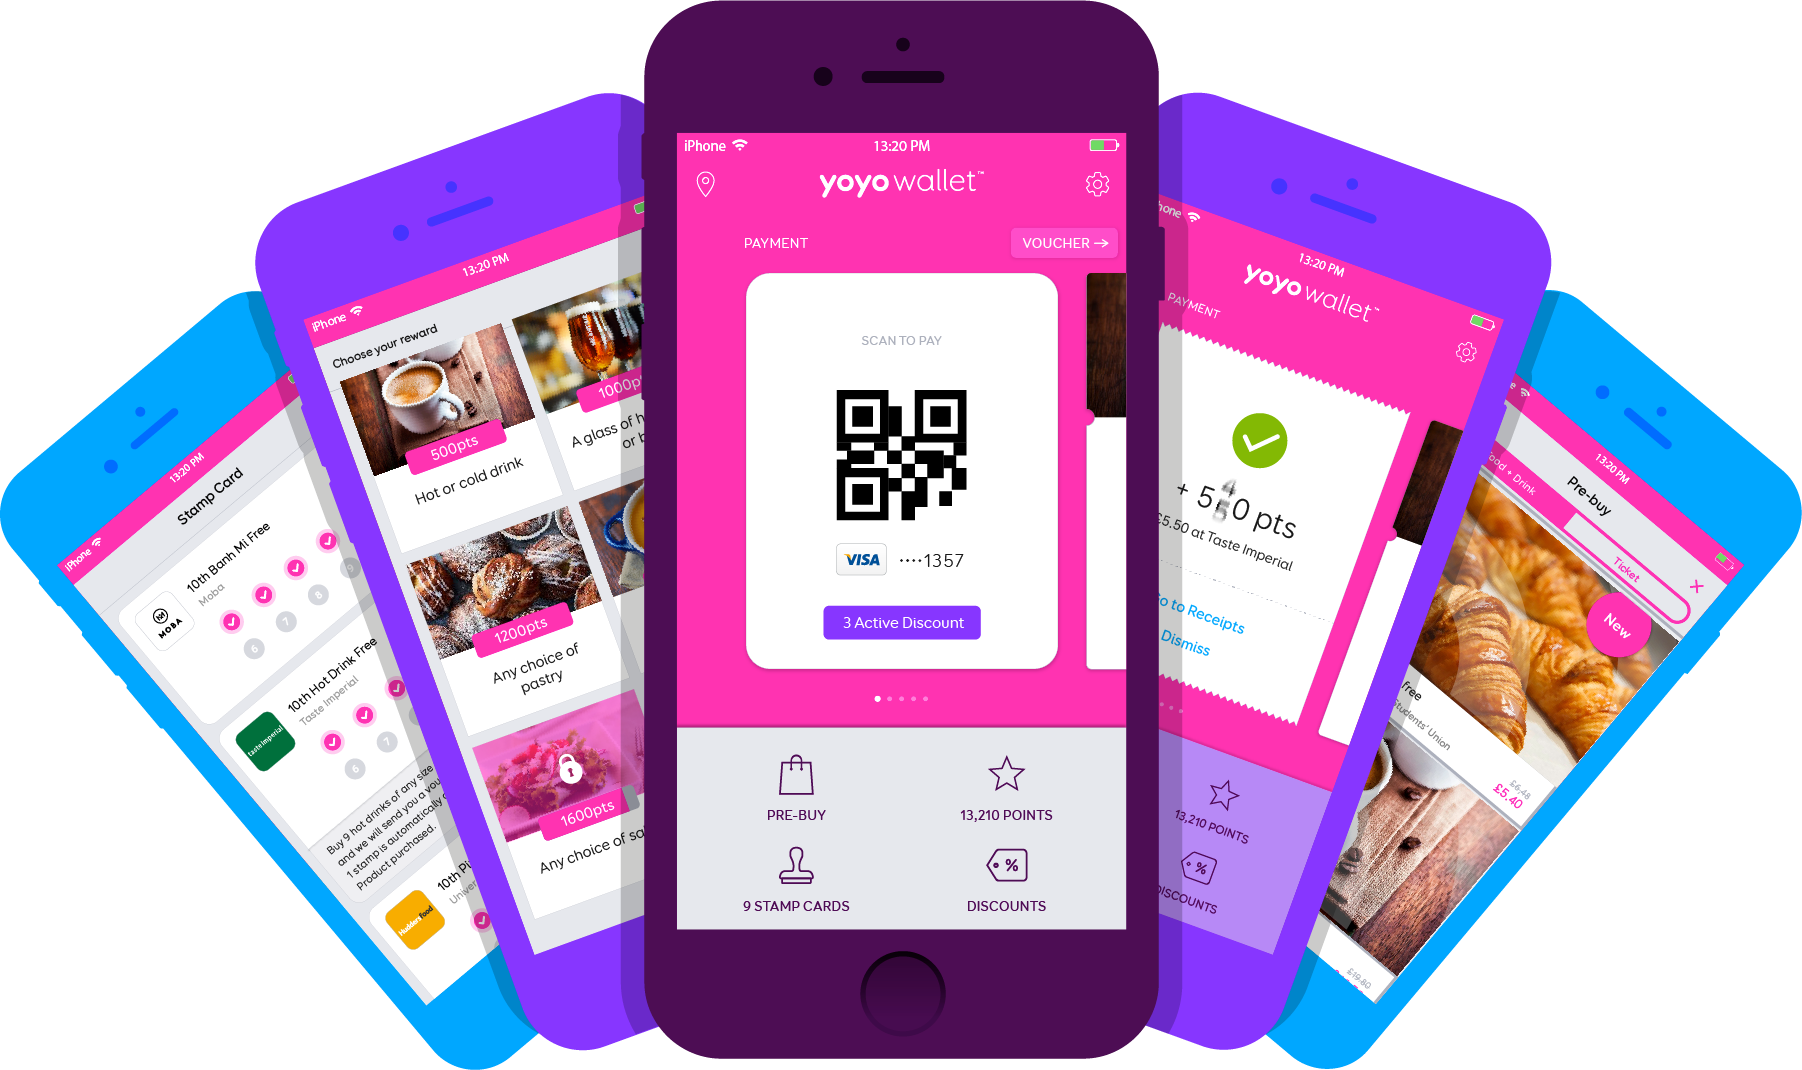 Yoyo Wallet Launches AI-powered Automation Platform, Yoyo Engage from Davos 2017